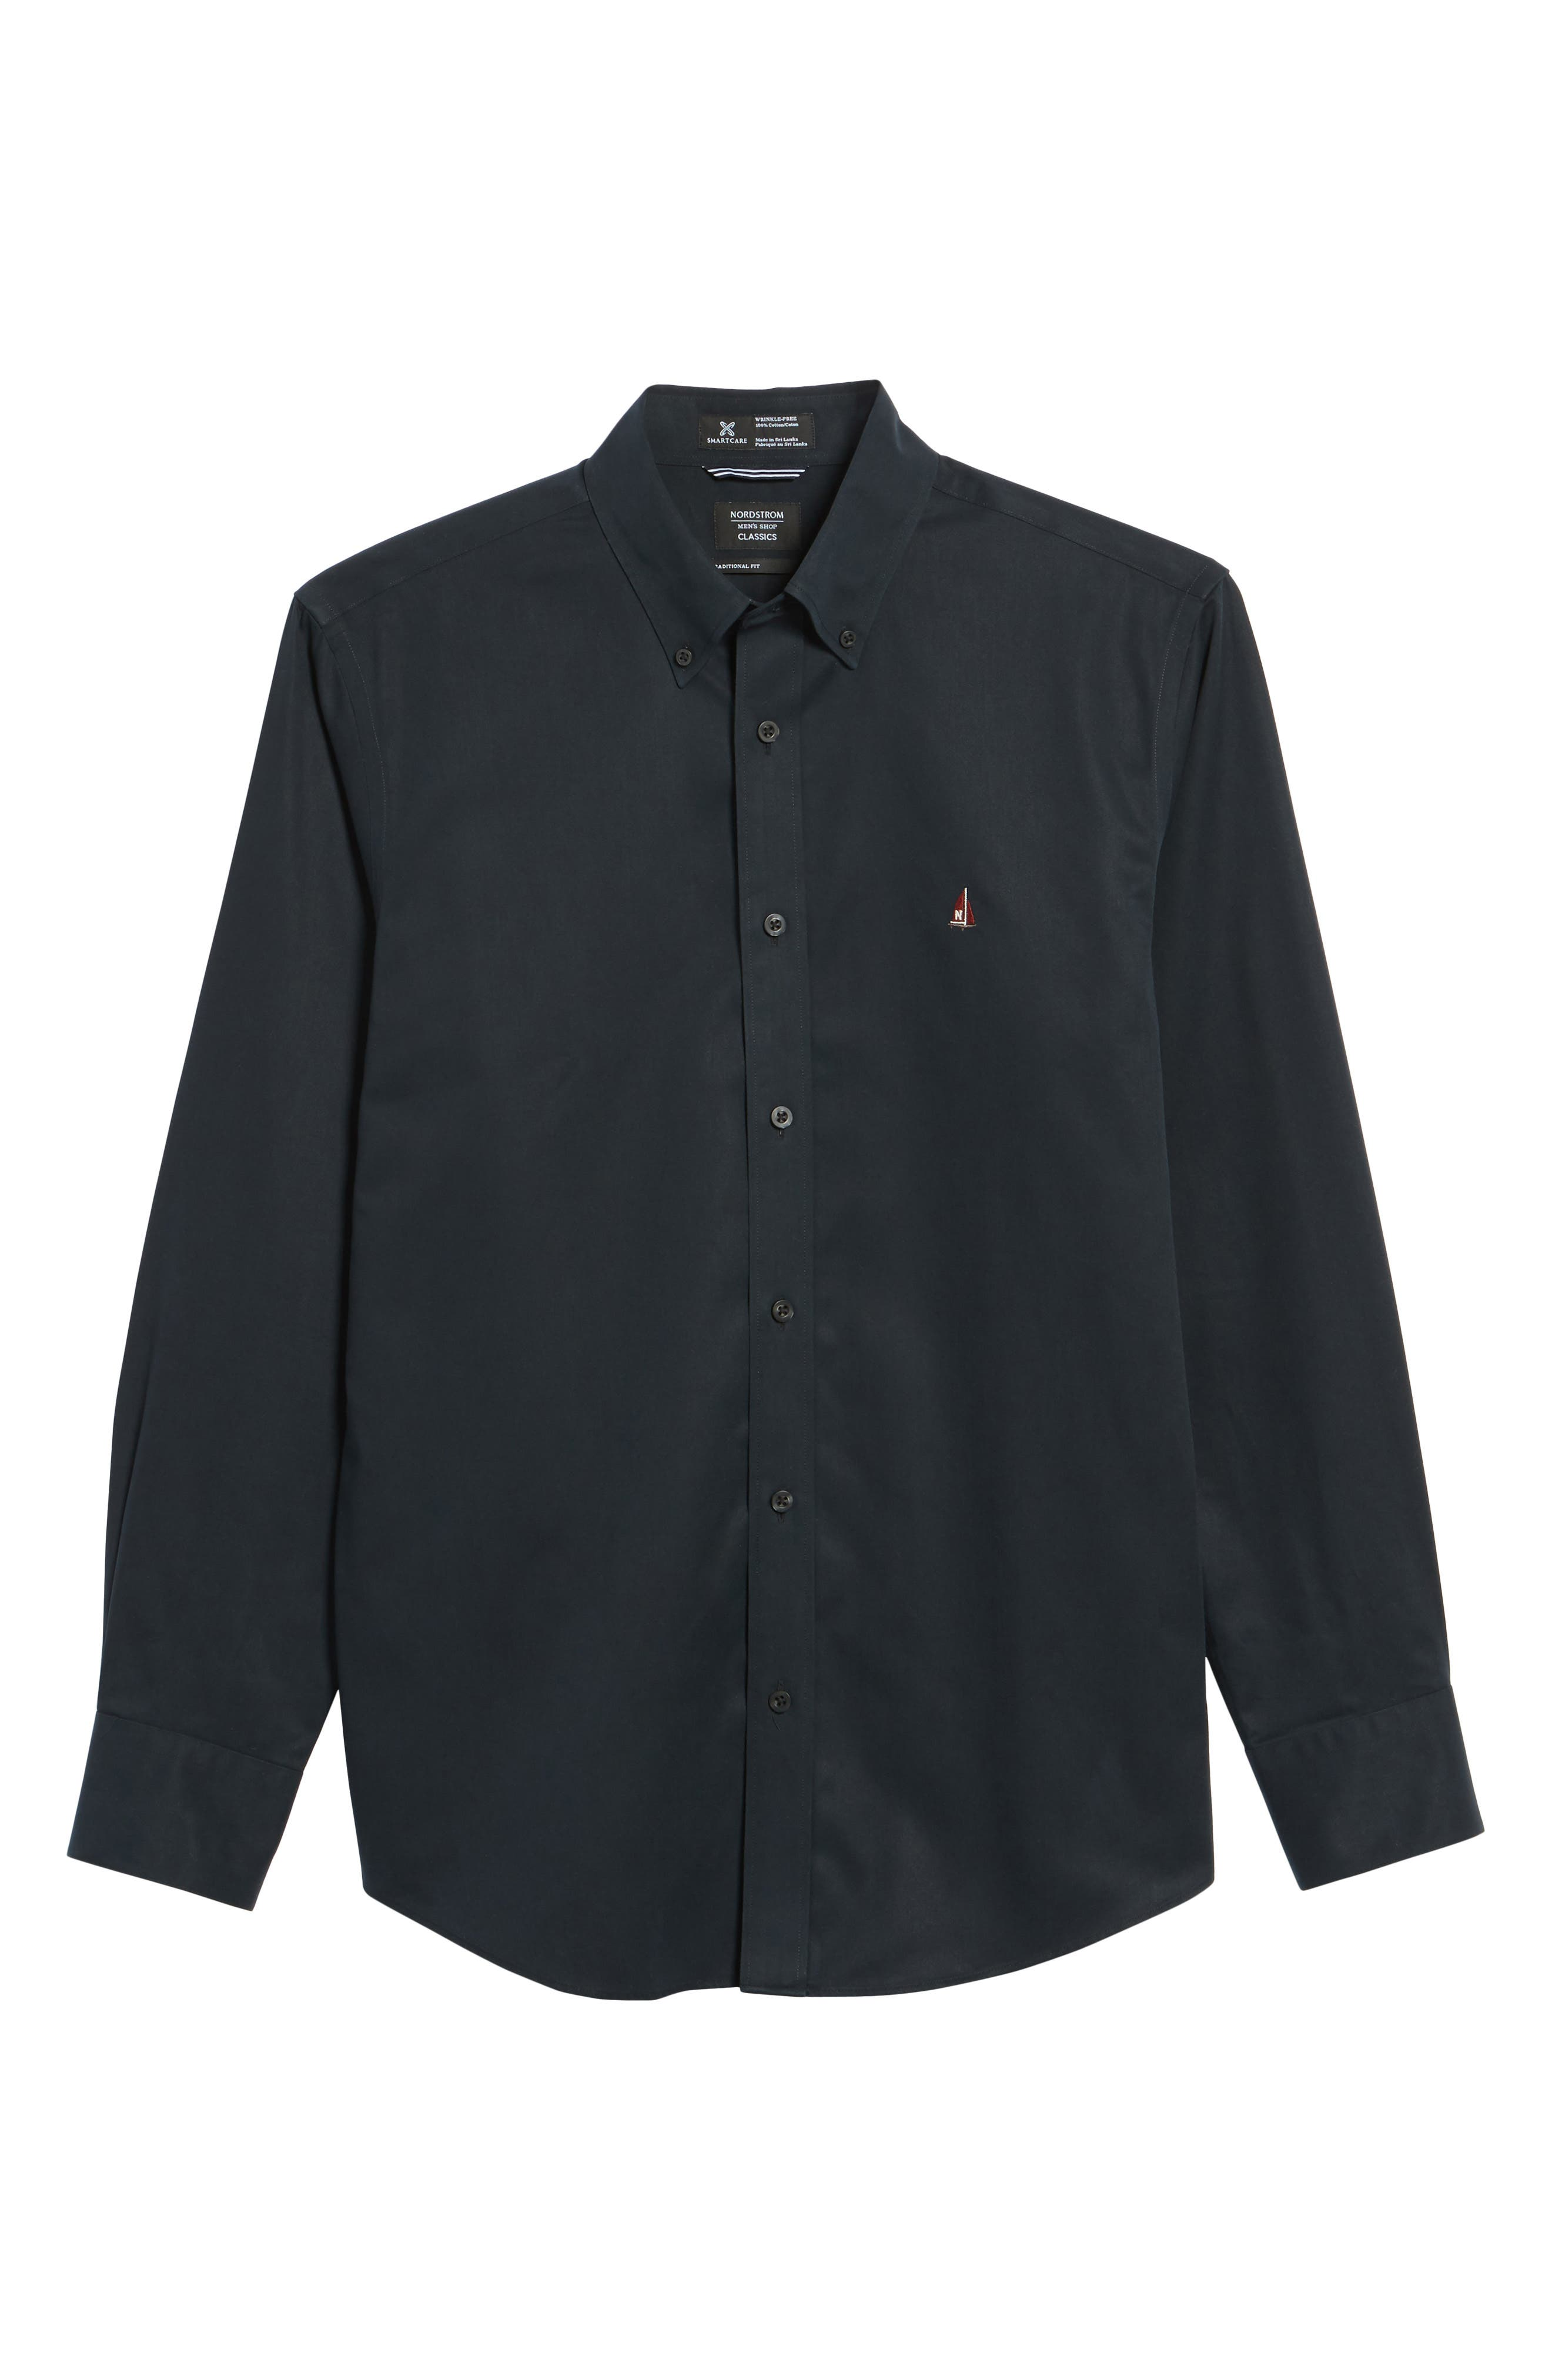 NORDSTROM MEN'S SHOP, Smartcare<sup>™</sup> Traditional Fit Twill Boat Shirt, Alternate thumbnail 6, color, BLACK